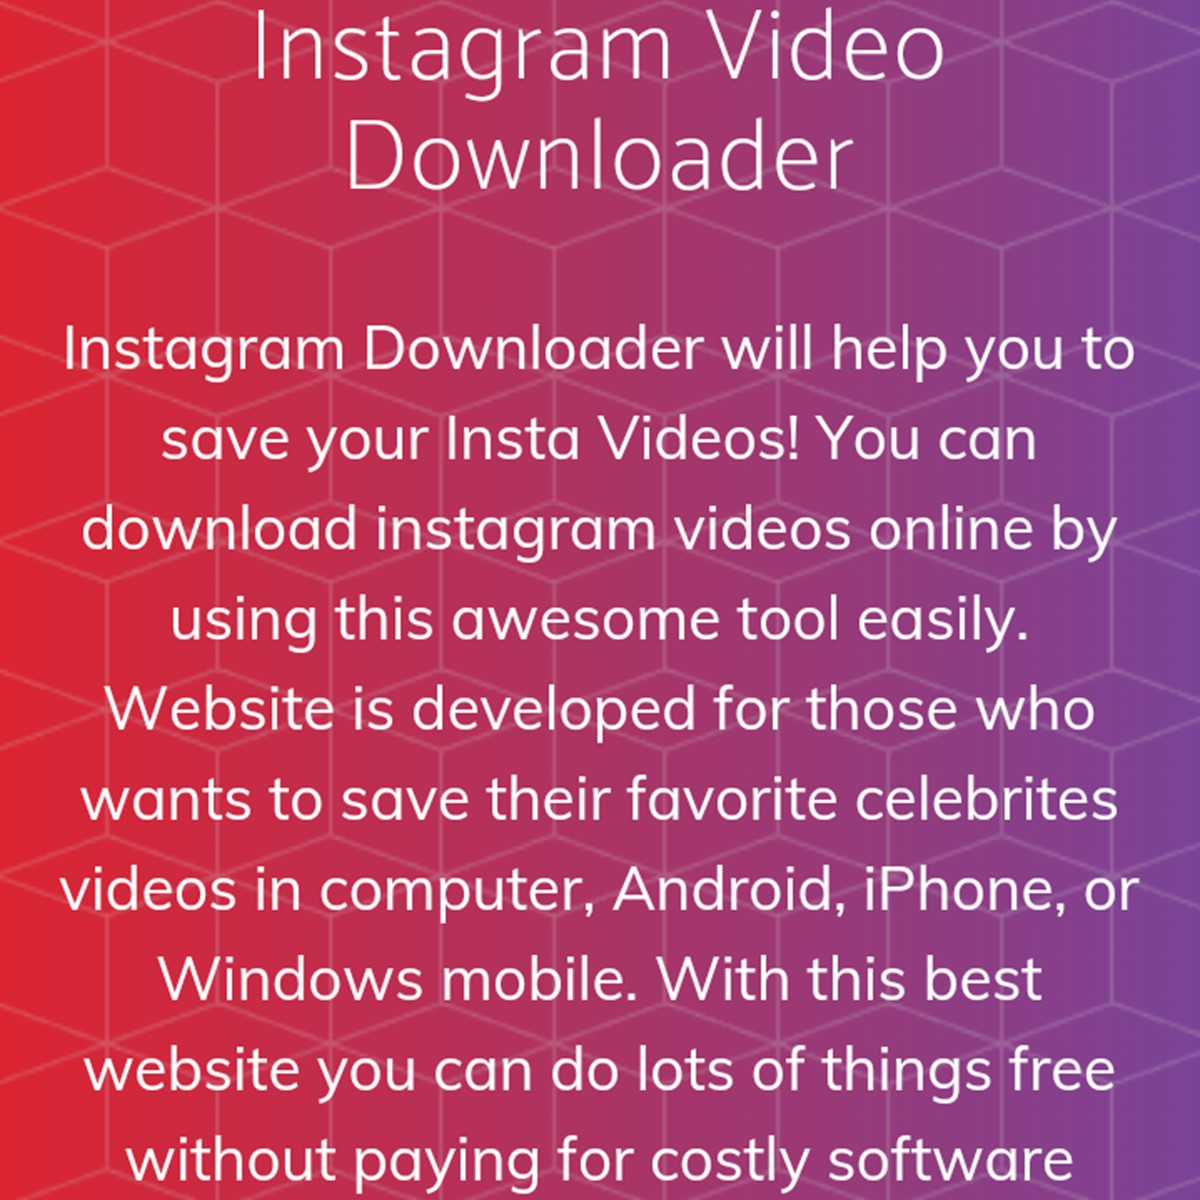 Instagram Video Downloader Alternatives and Similar Websites